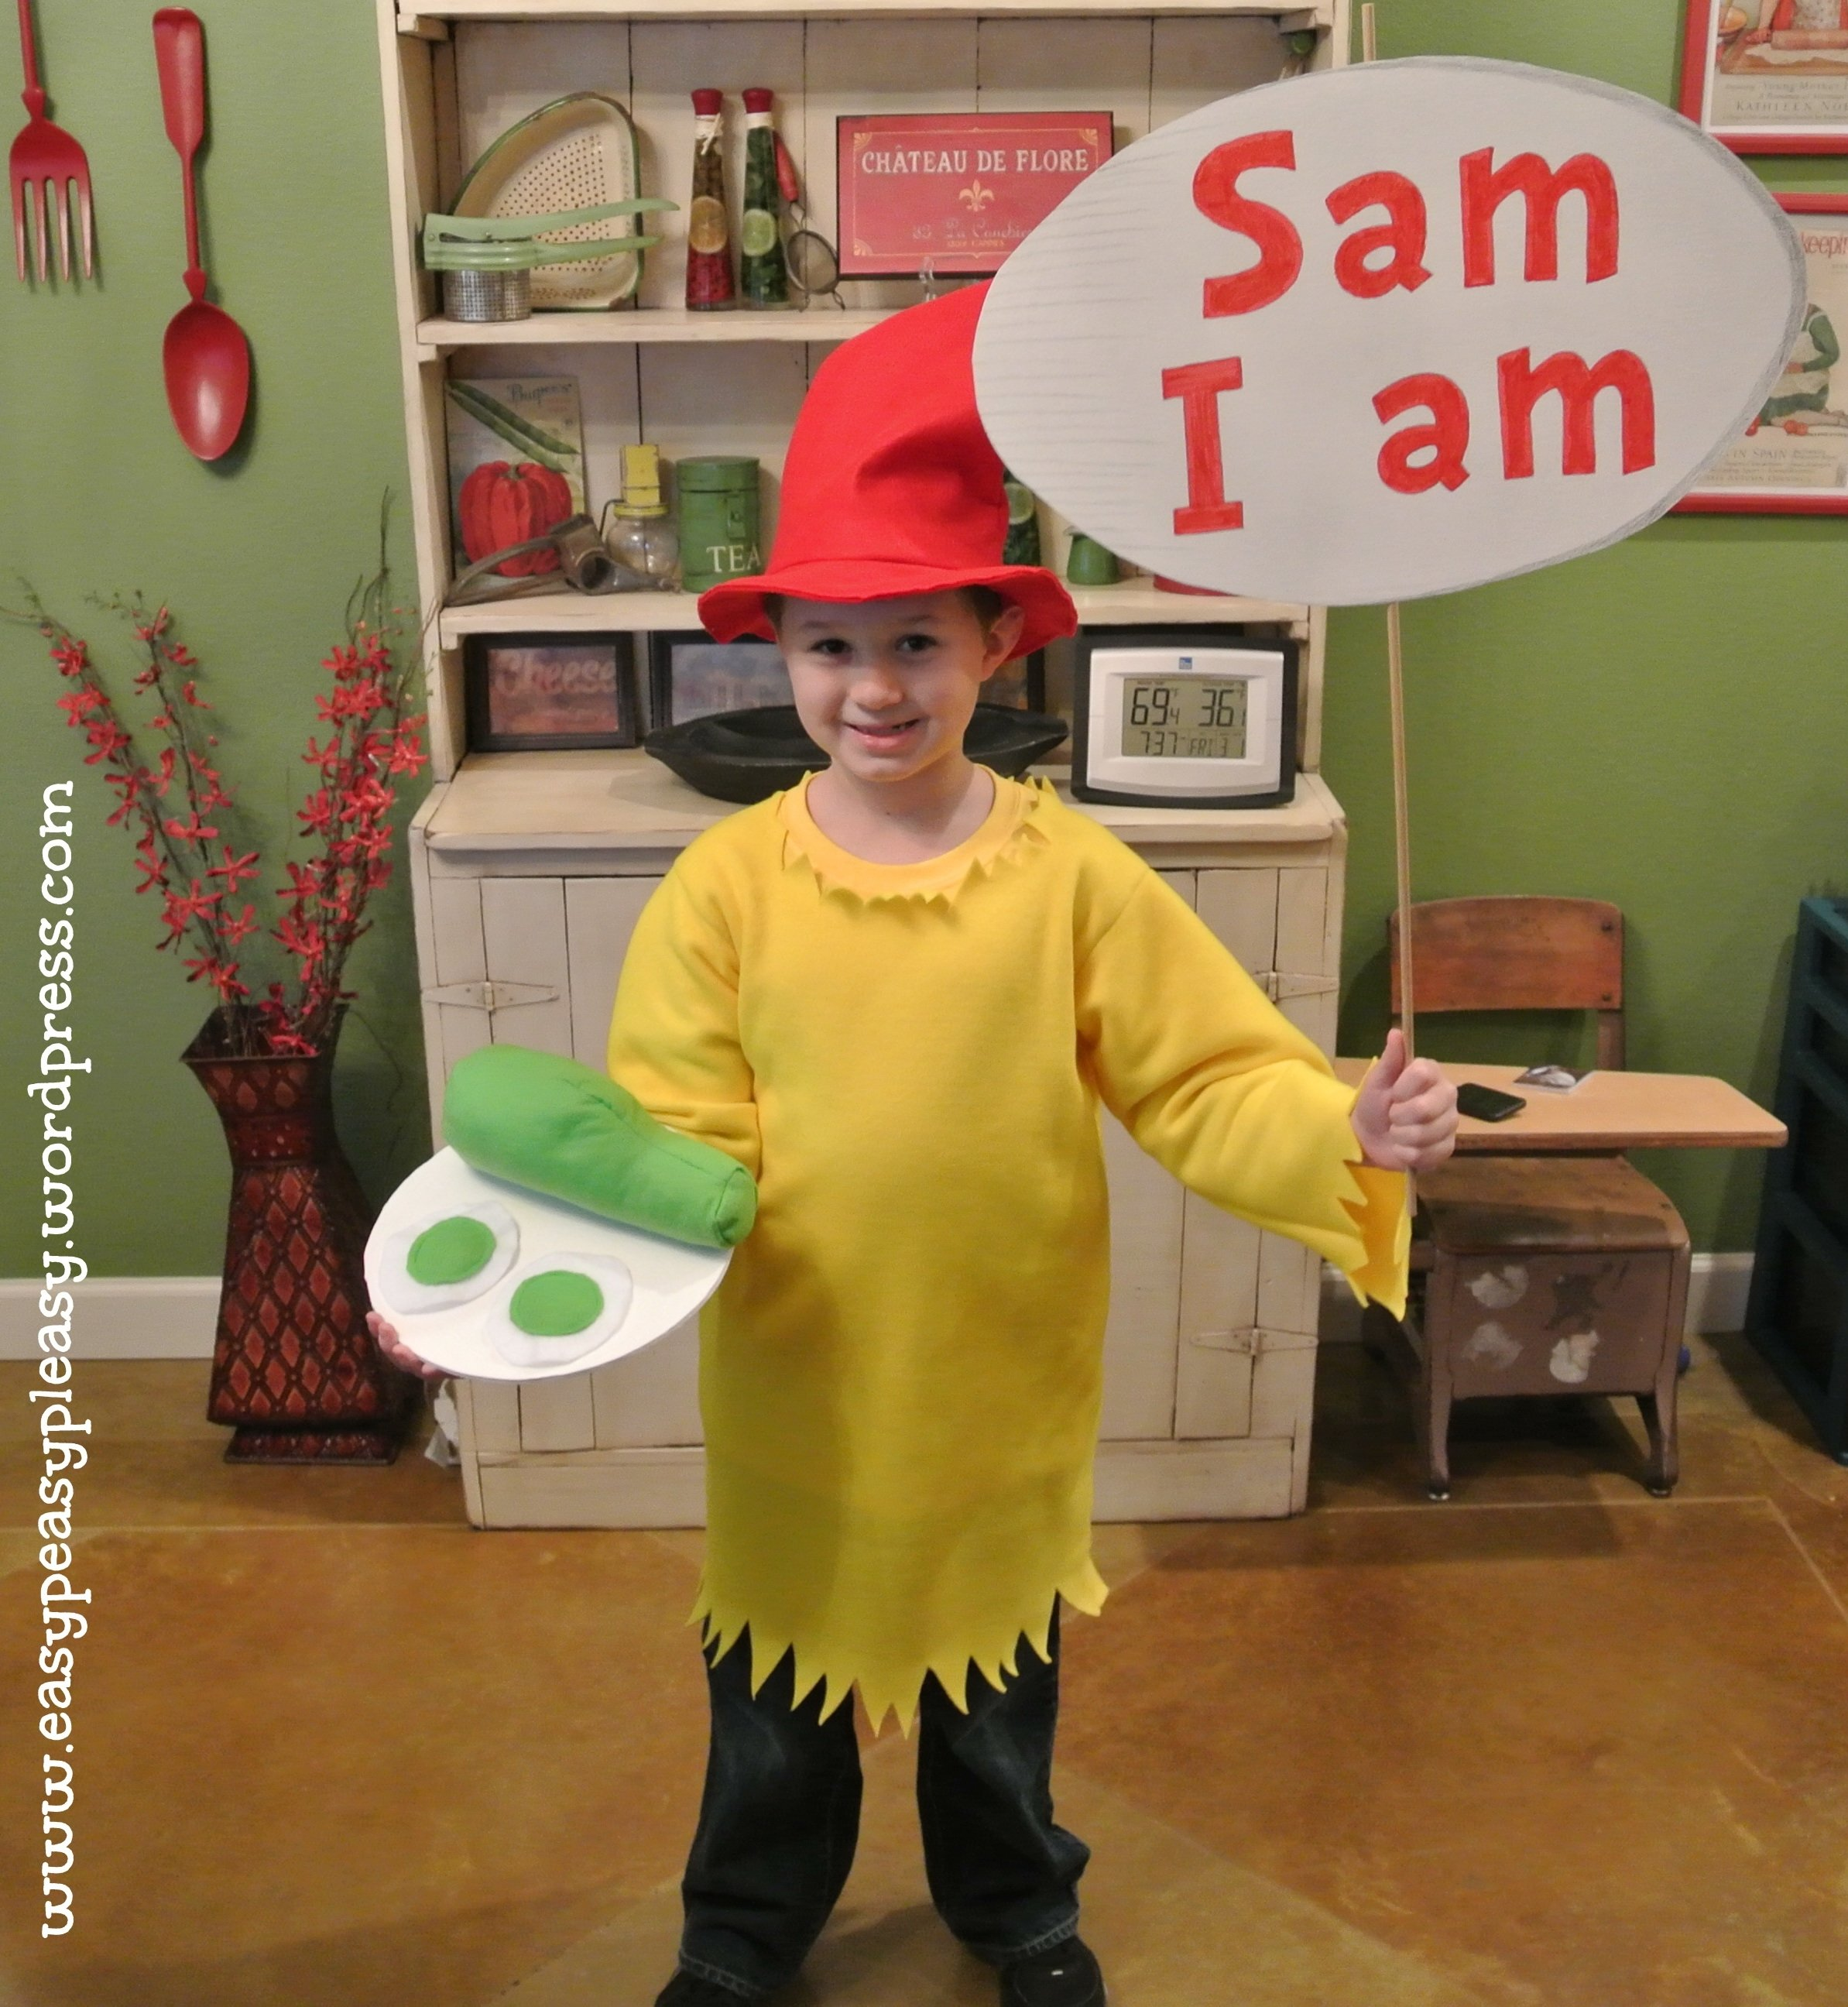 10 Stylish Easy Dr Seuss Costume Ideas all things dr seuss sam i am costume easy peasy pleasy 1 2020